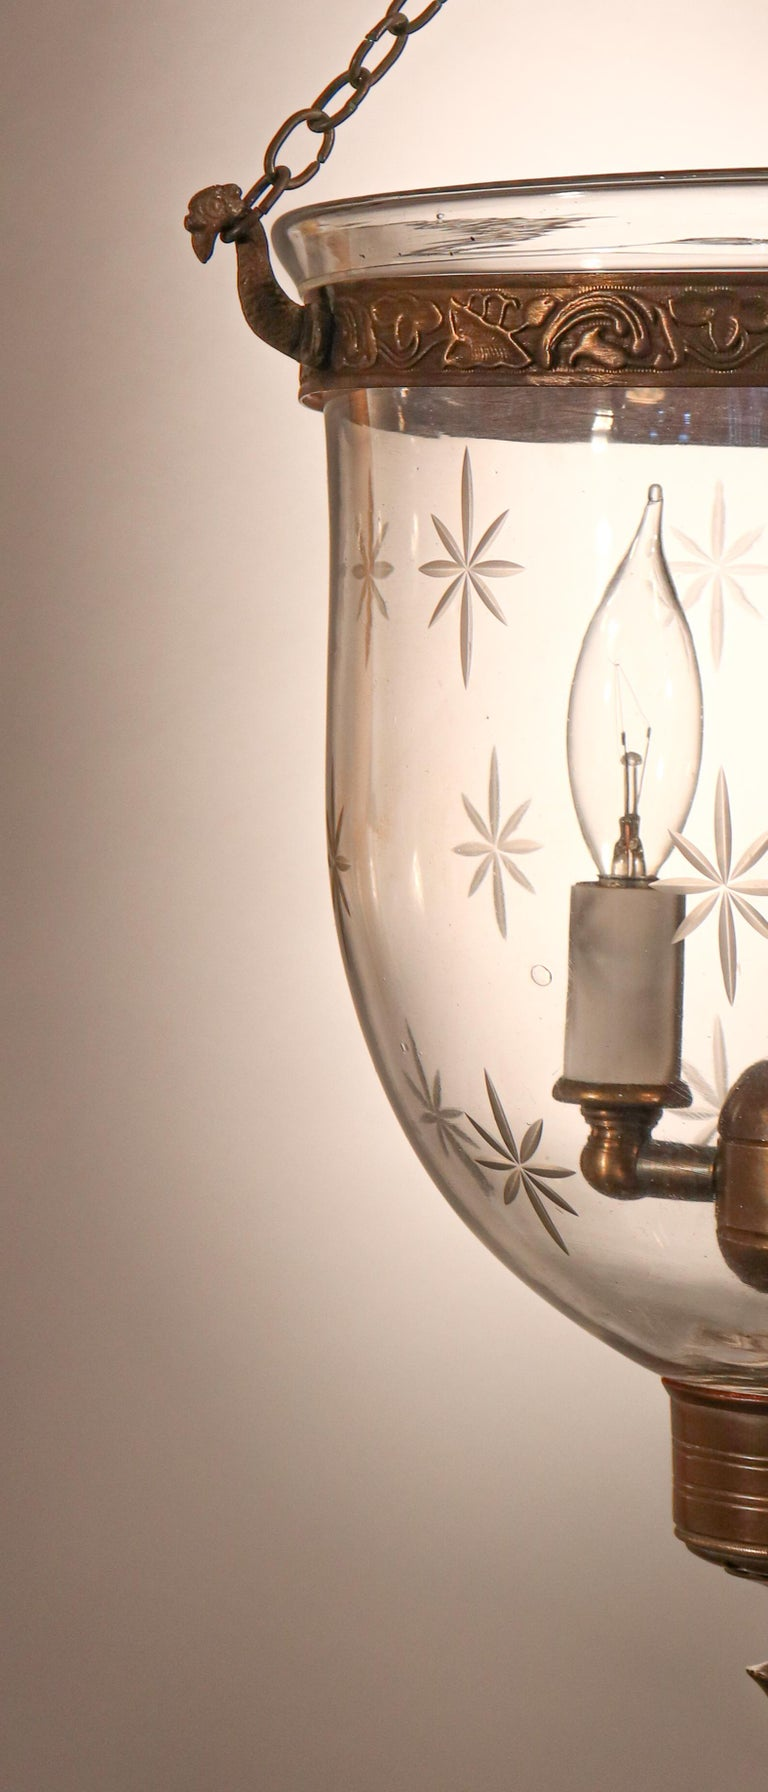 Petite Bell Jar Lantern with Star Etching In Good Condition For Sale In Heath, MA